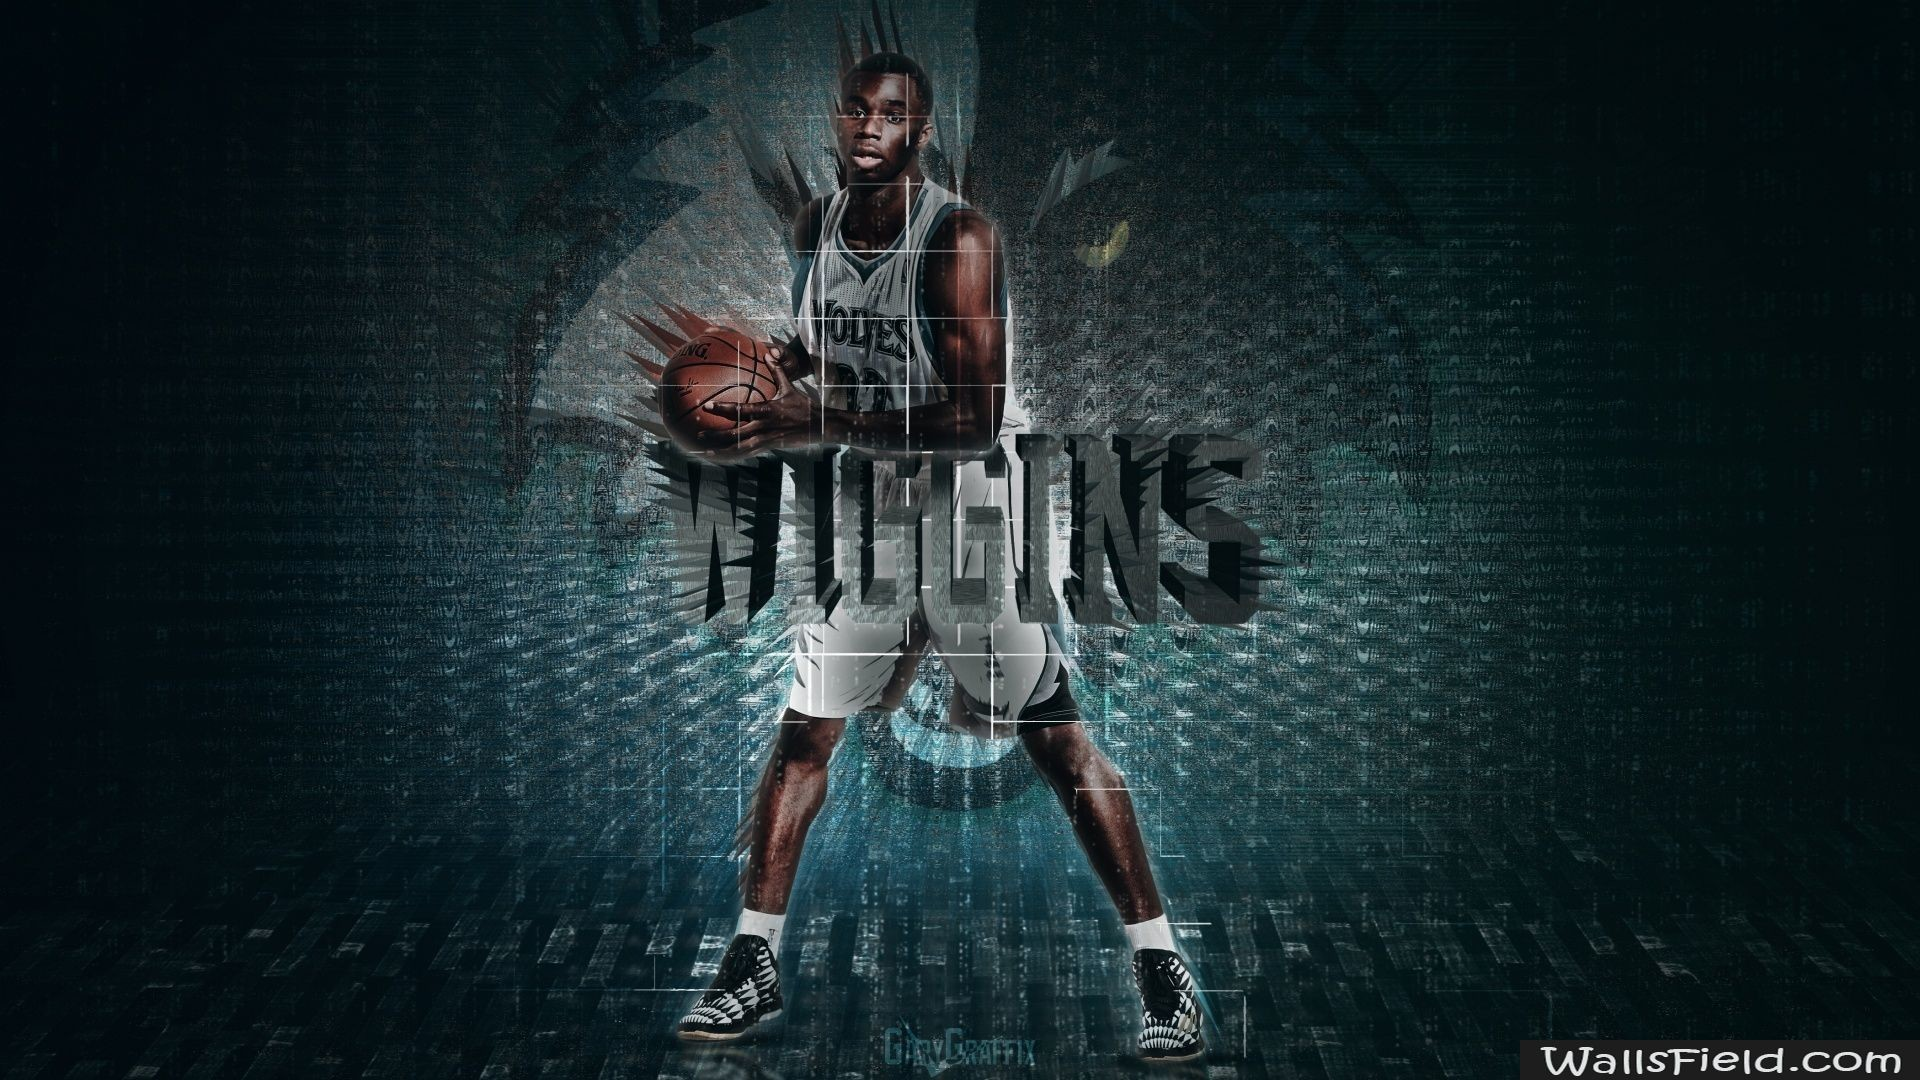 1920x1080 Andrew Wiggins Timberwolves - Wallsfield.com